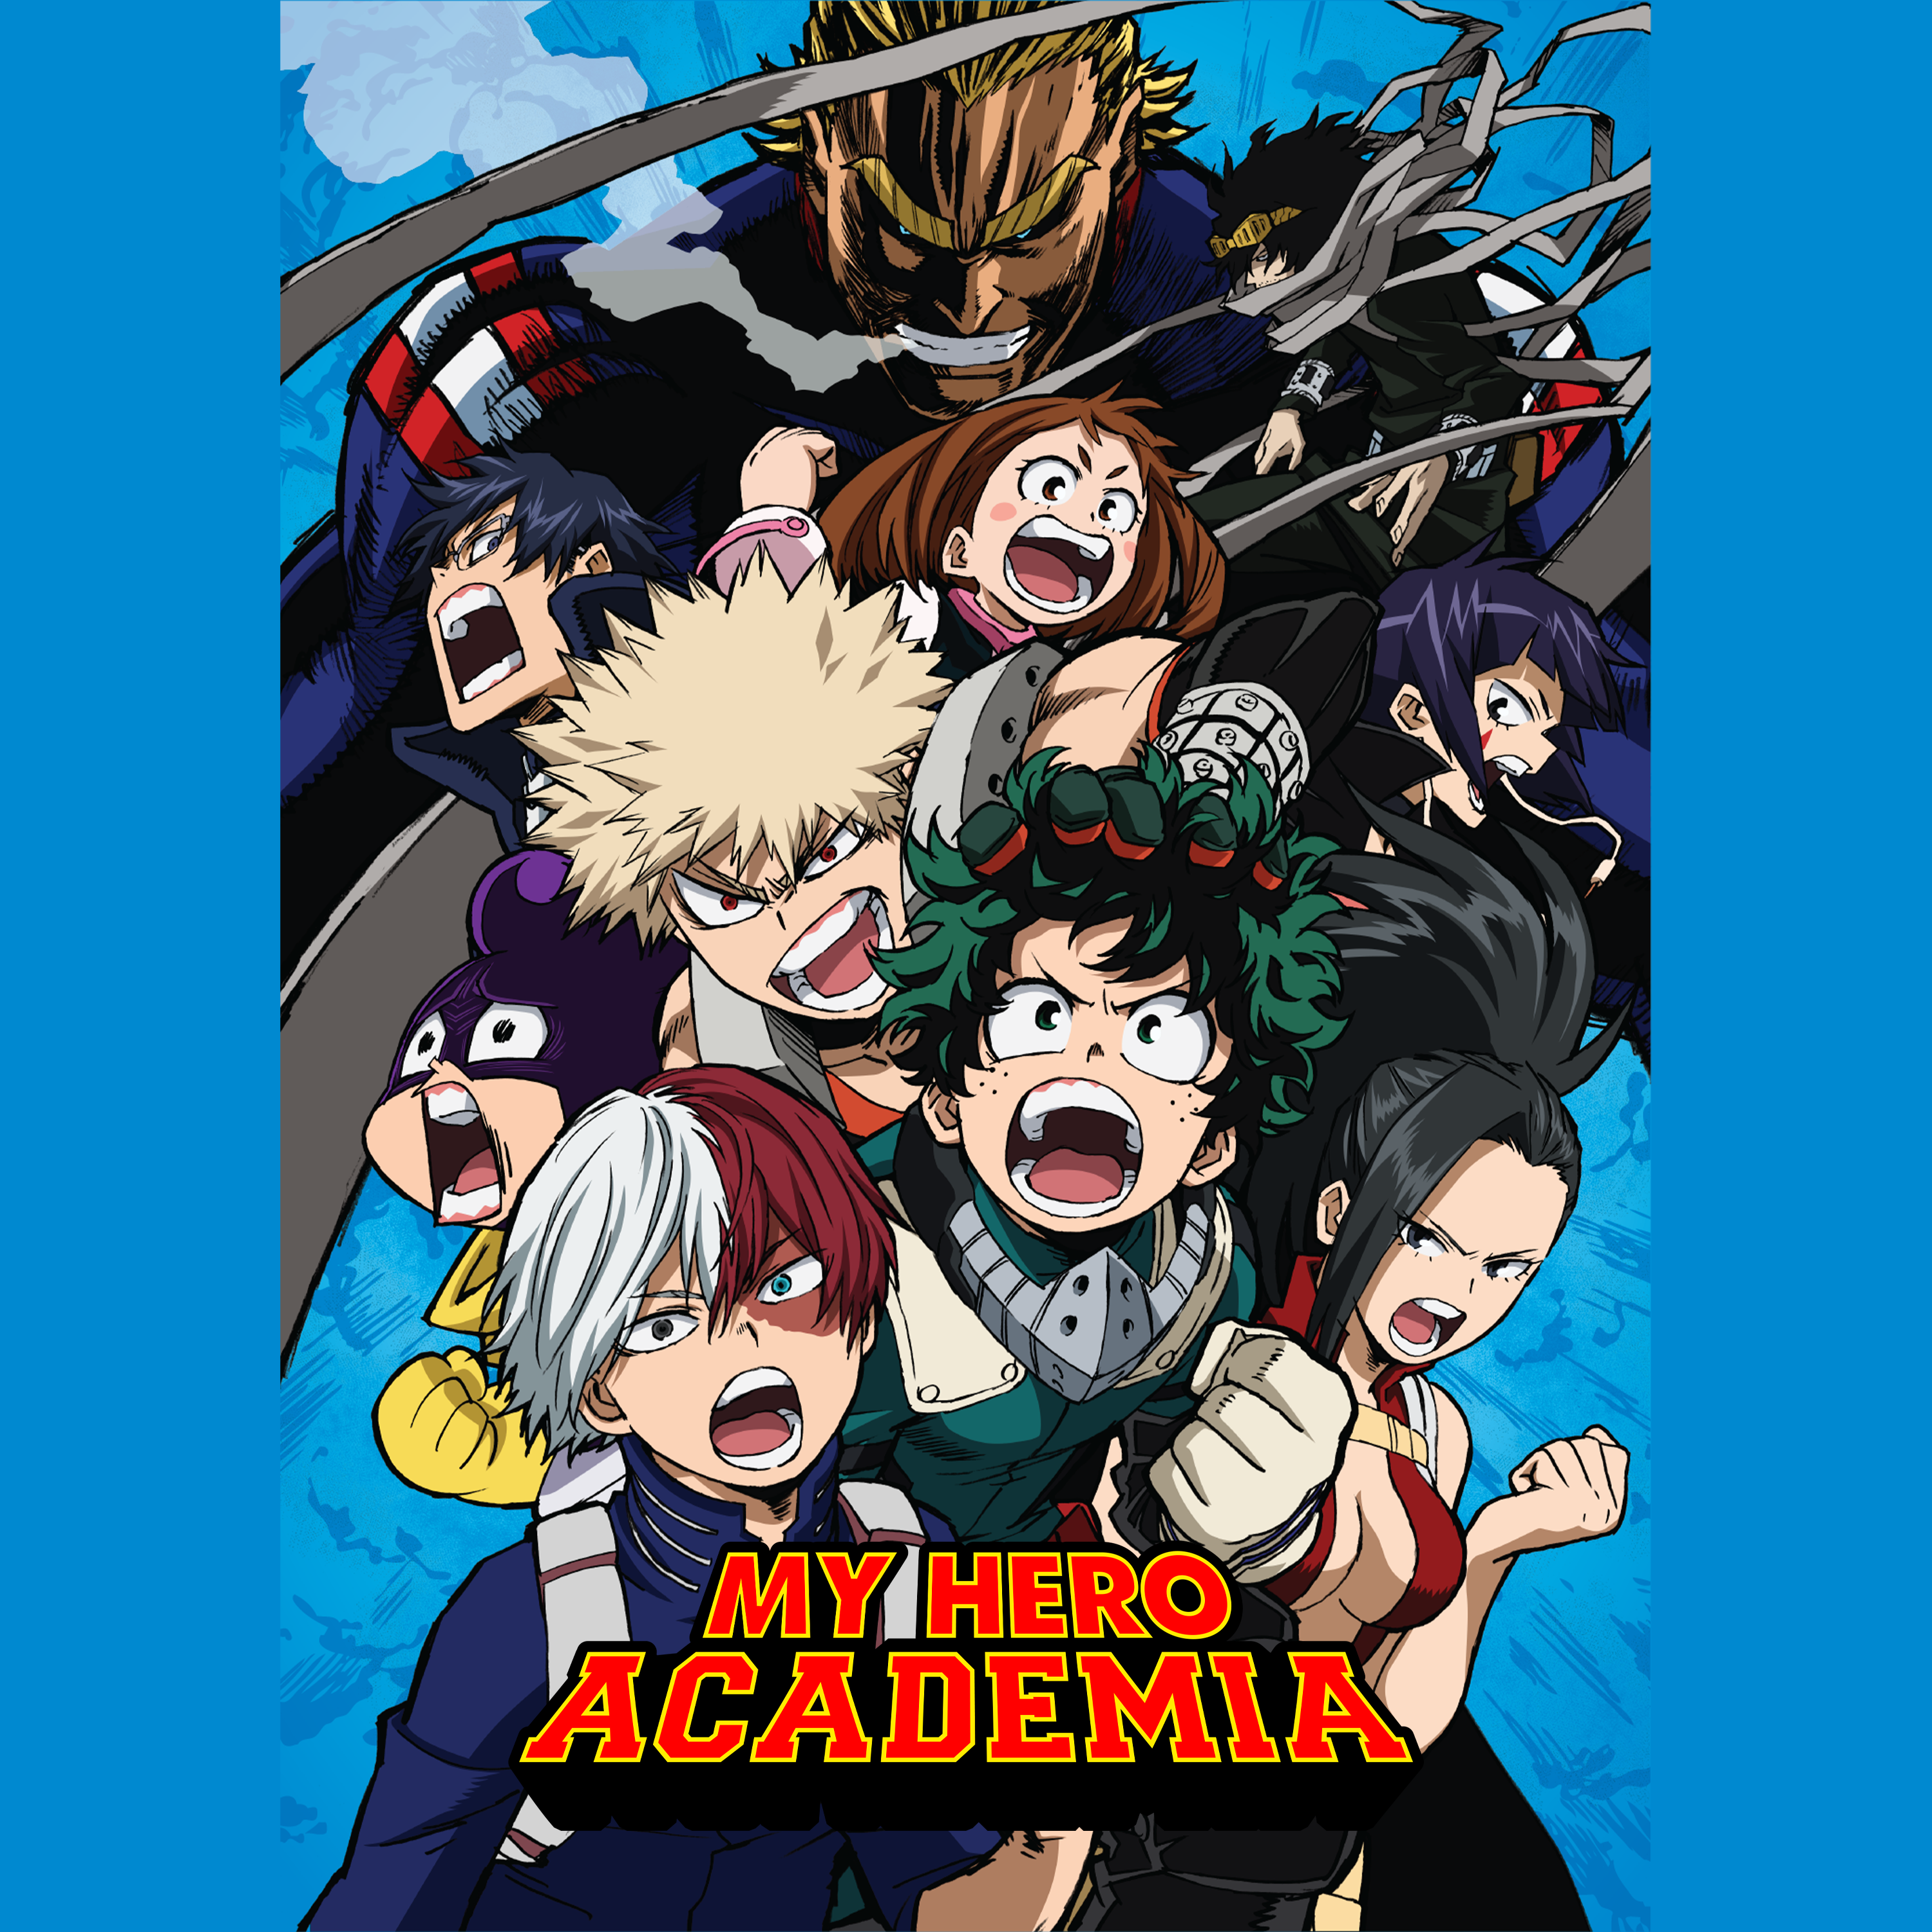 Watch My Hero Academia Sub Dub Action Adventure Shounen Anime Funimation